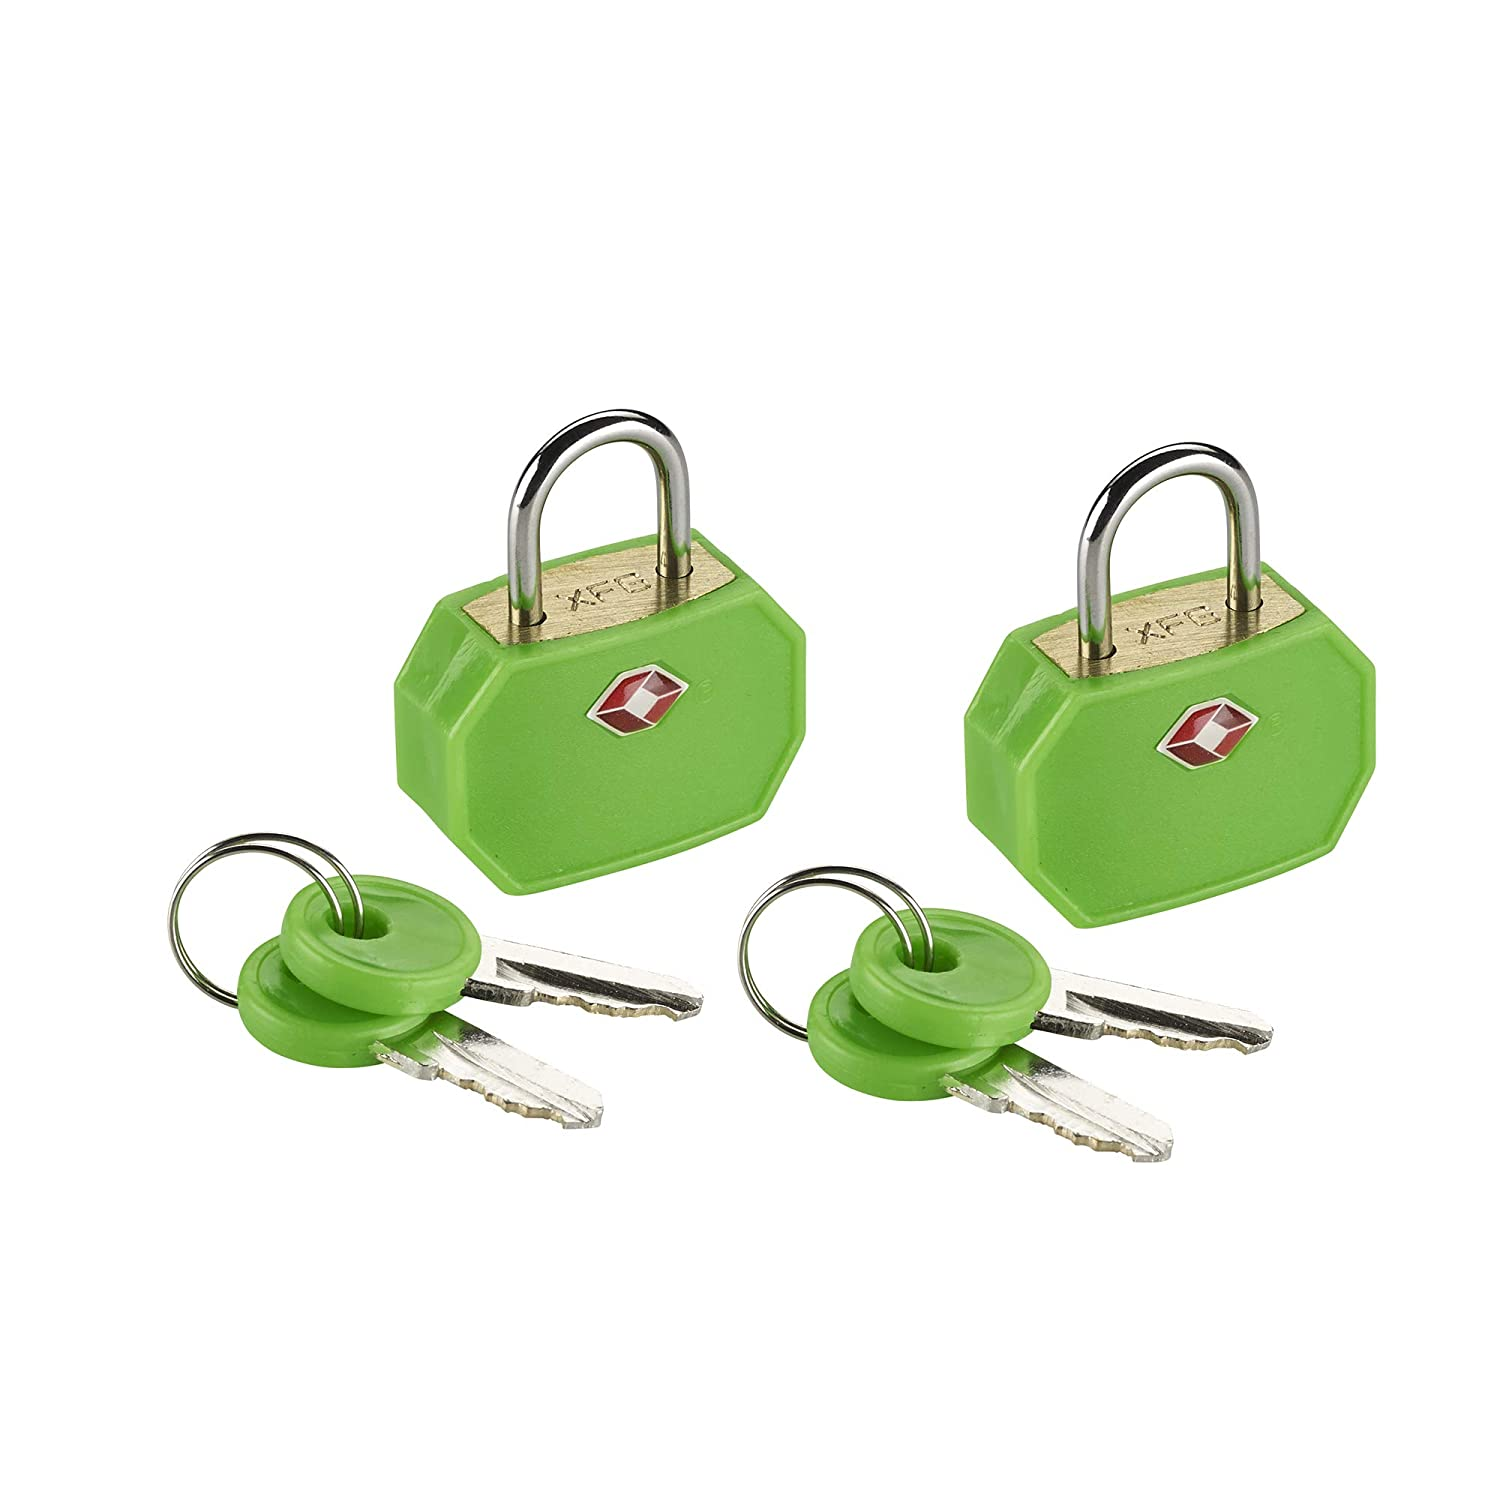 1a09f39b4539 Lewis N. Clark Travel Sentry TSA Lock + Mini Padlock for Luggage Suitcase,  Carry On, Backpack, Laptop Bag or Purse - Perfect for Airport, Hotel, And  ...